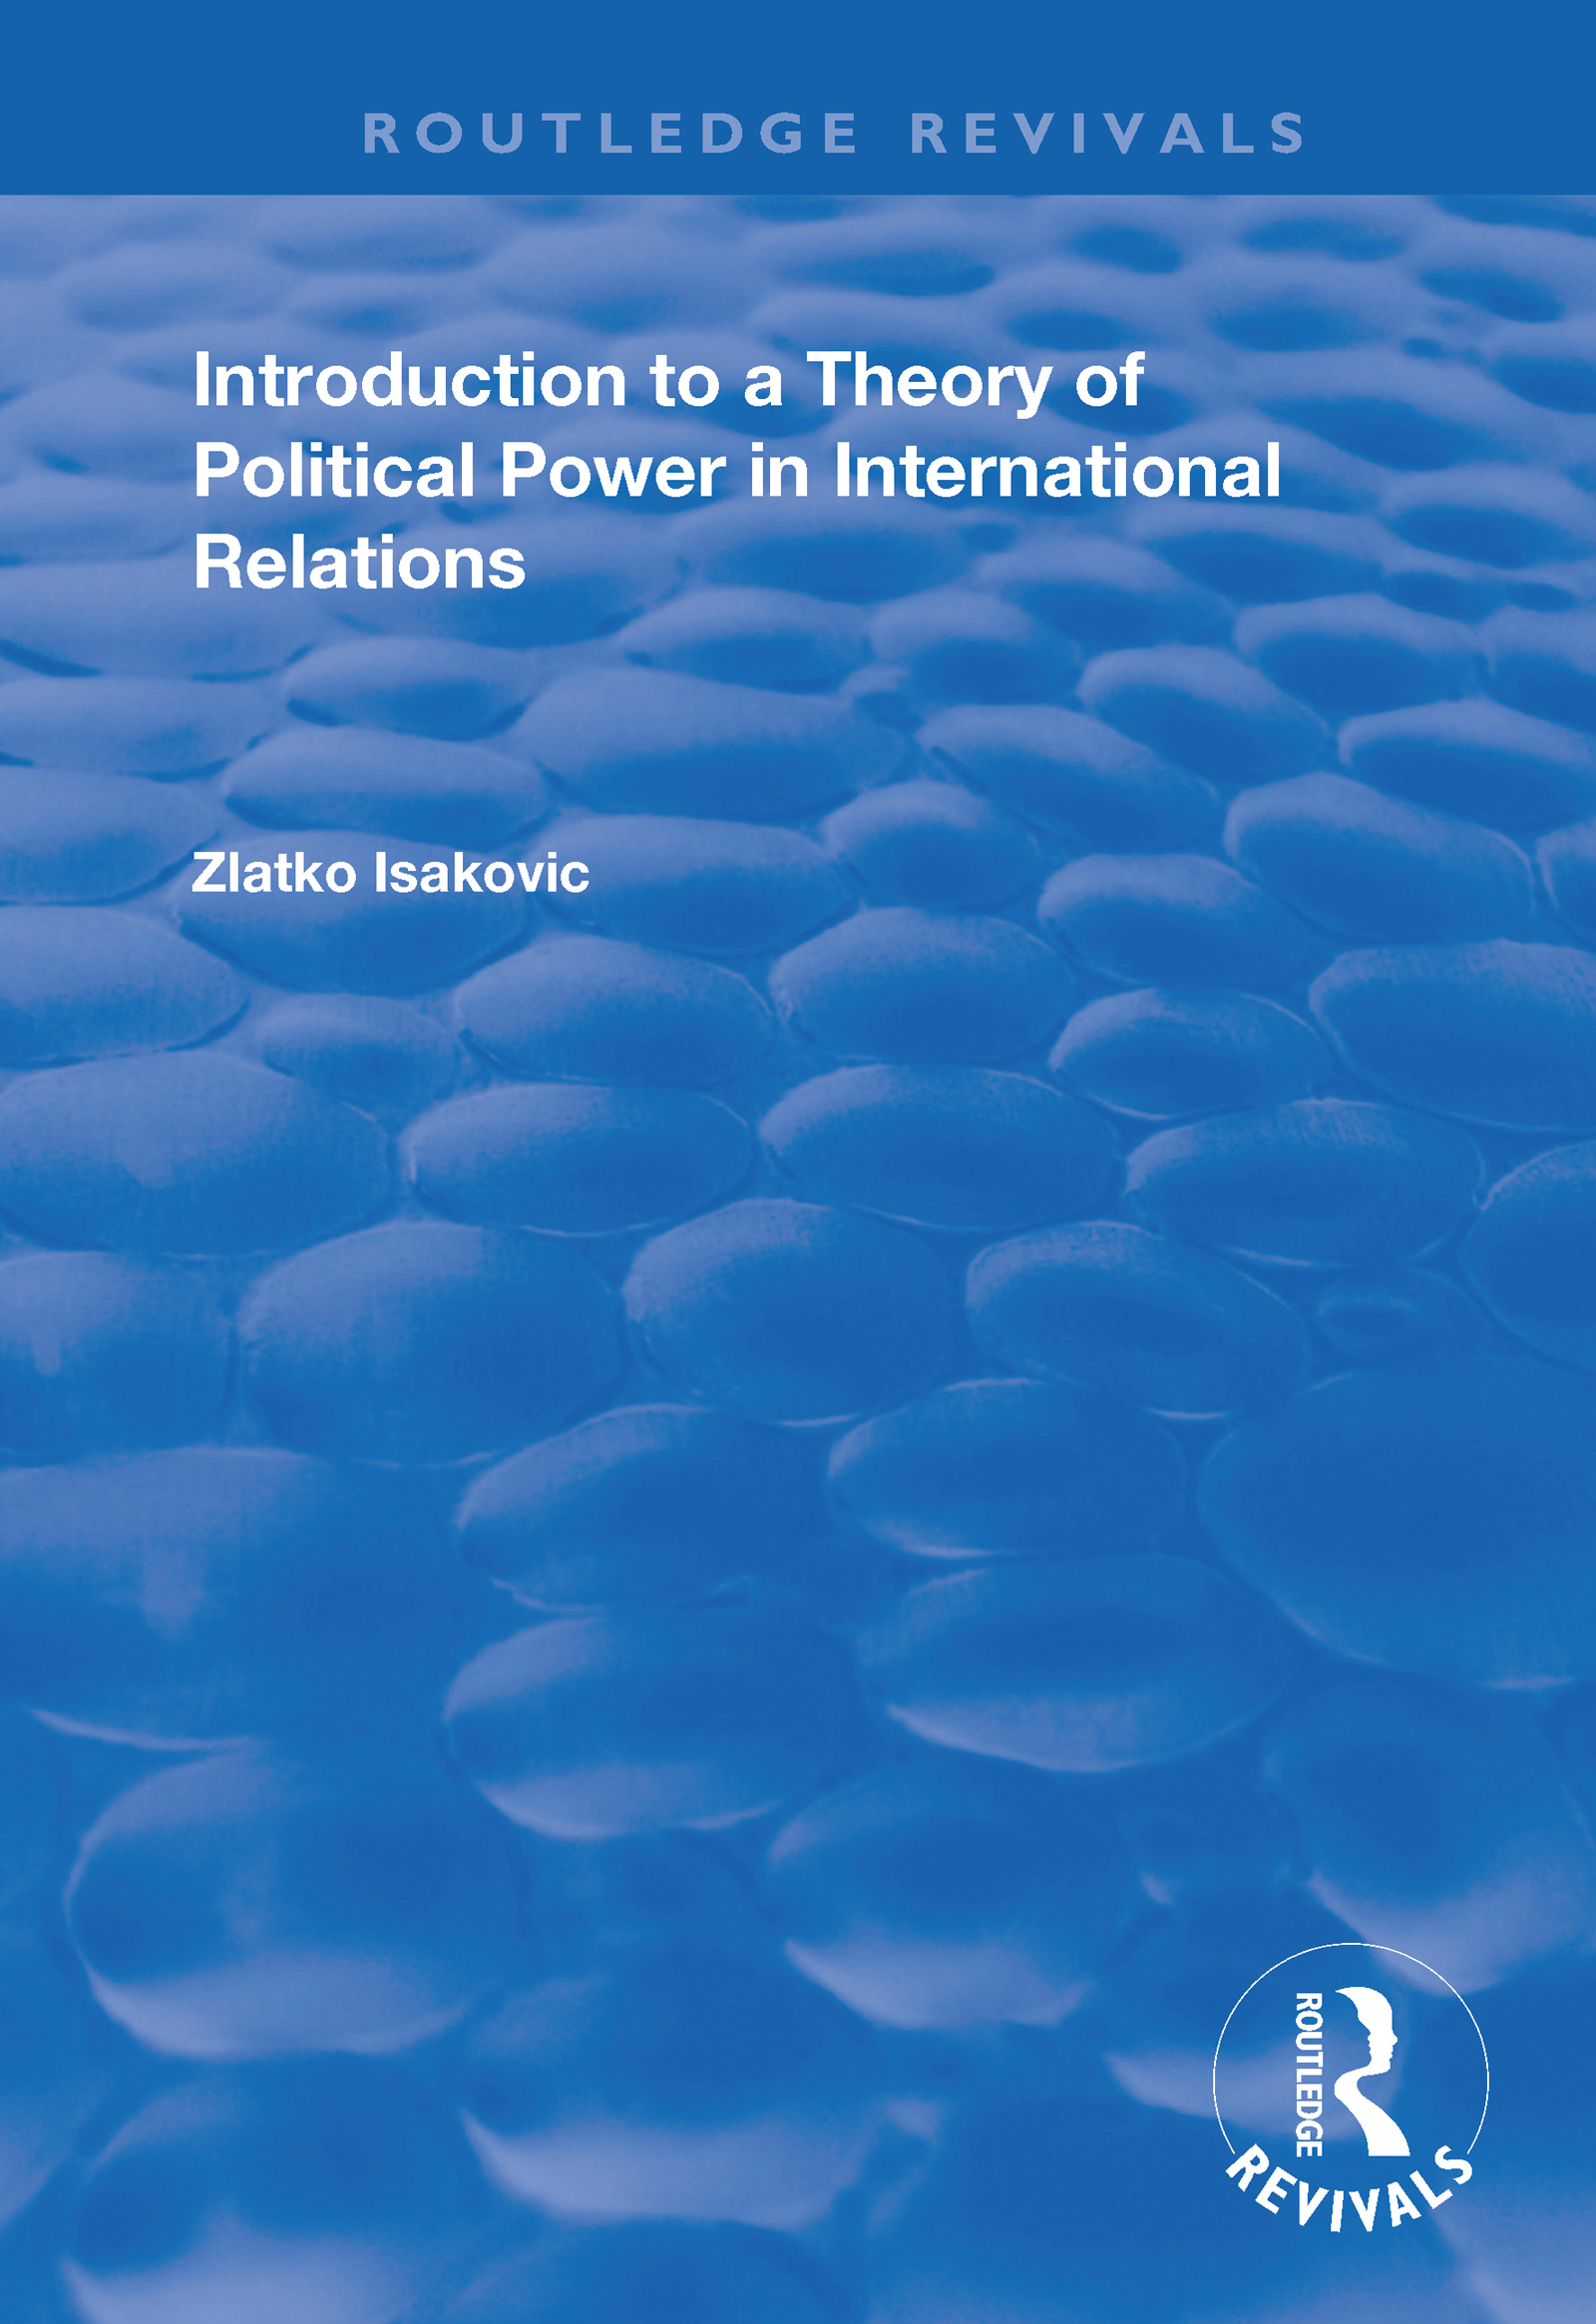 Introduction to a Theory of Political Power in International Relations